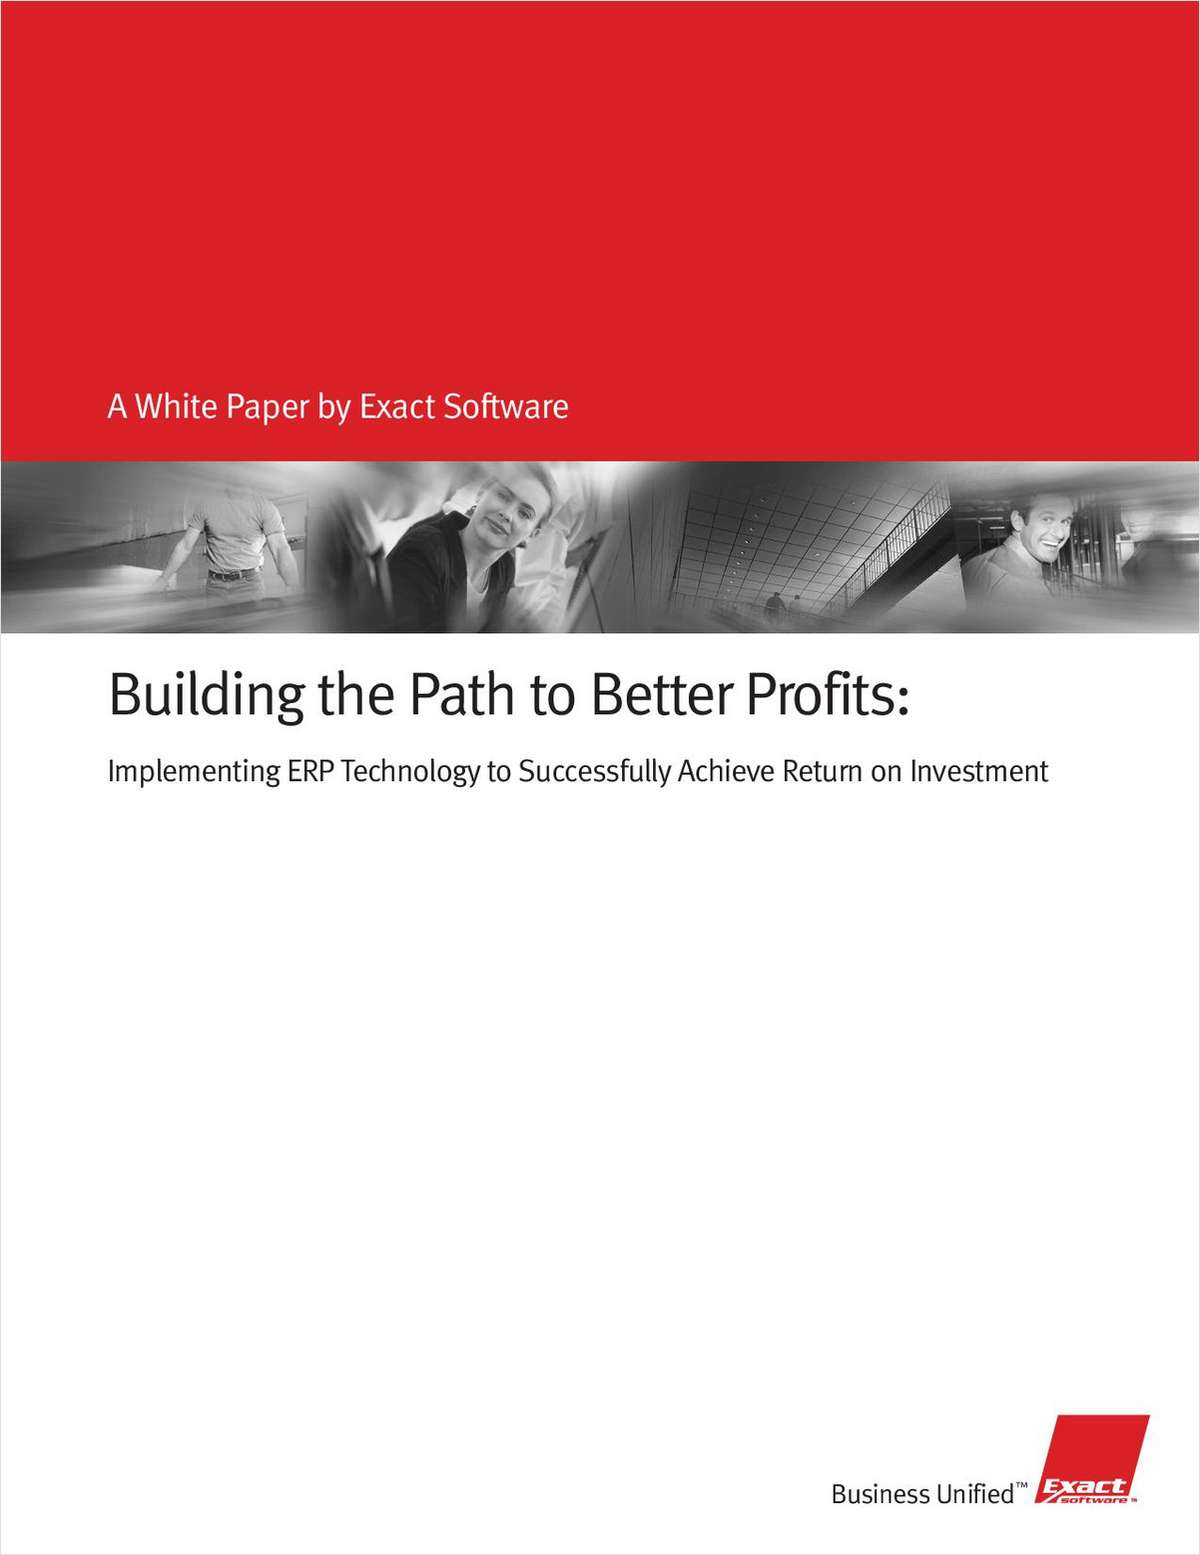 Build the Path to Better Profits: Implementing ERP Technology Successfully